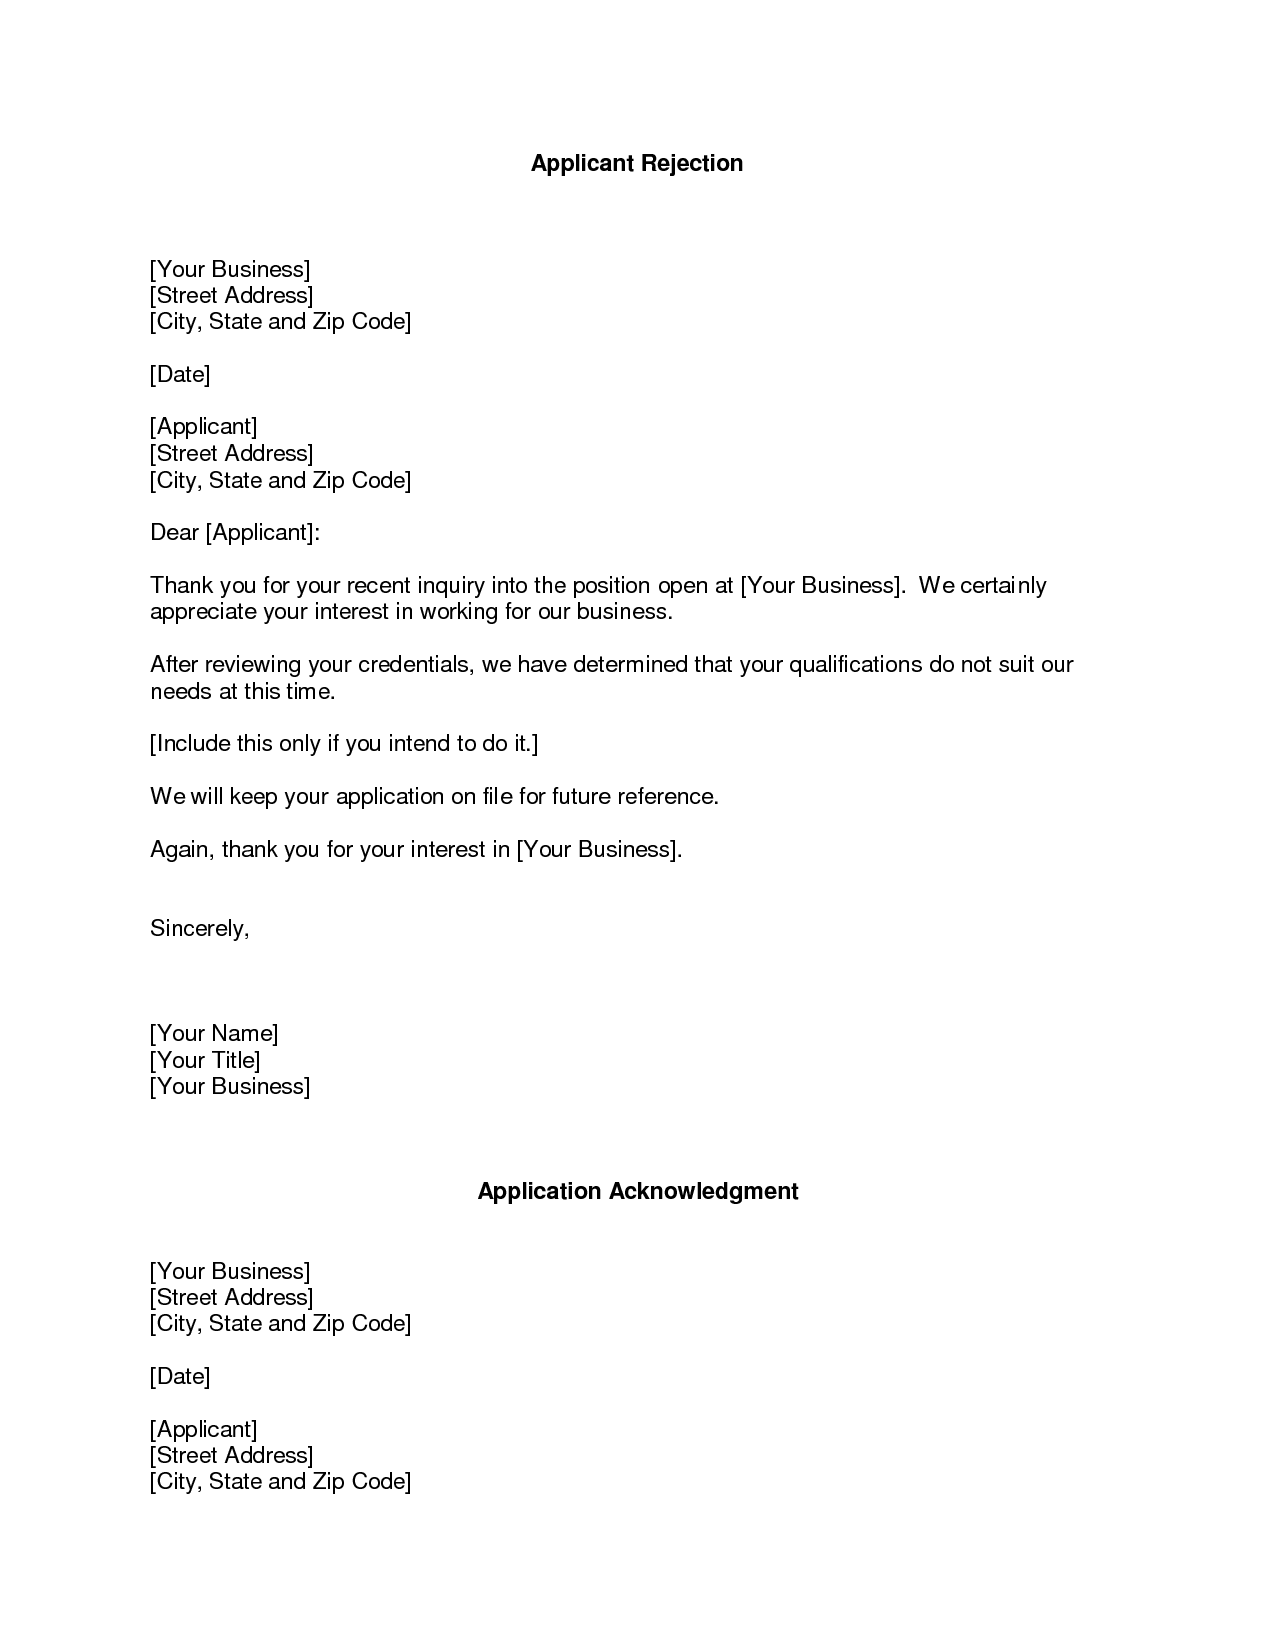 Cover Letter Career Change Simple Business Rejection Letter  The Rejection Letter Format Is Similar Design Inspiration